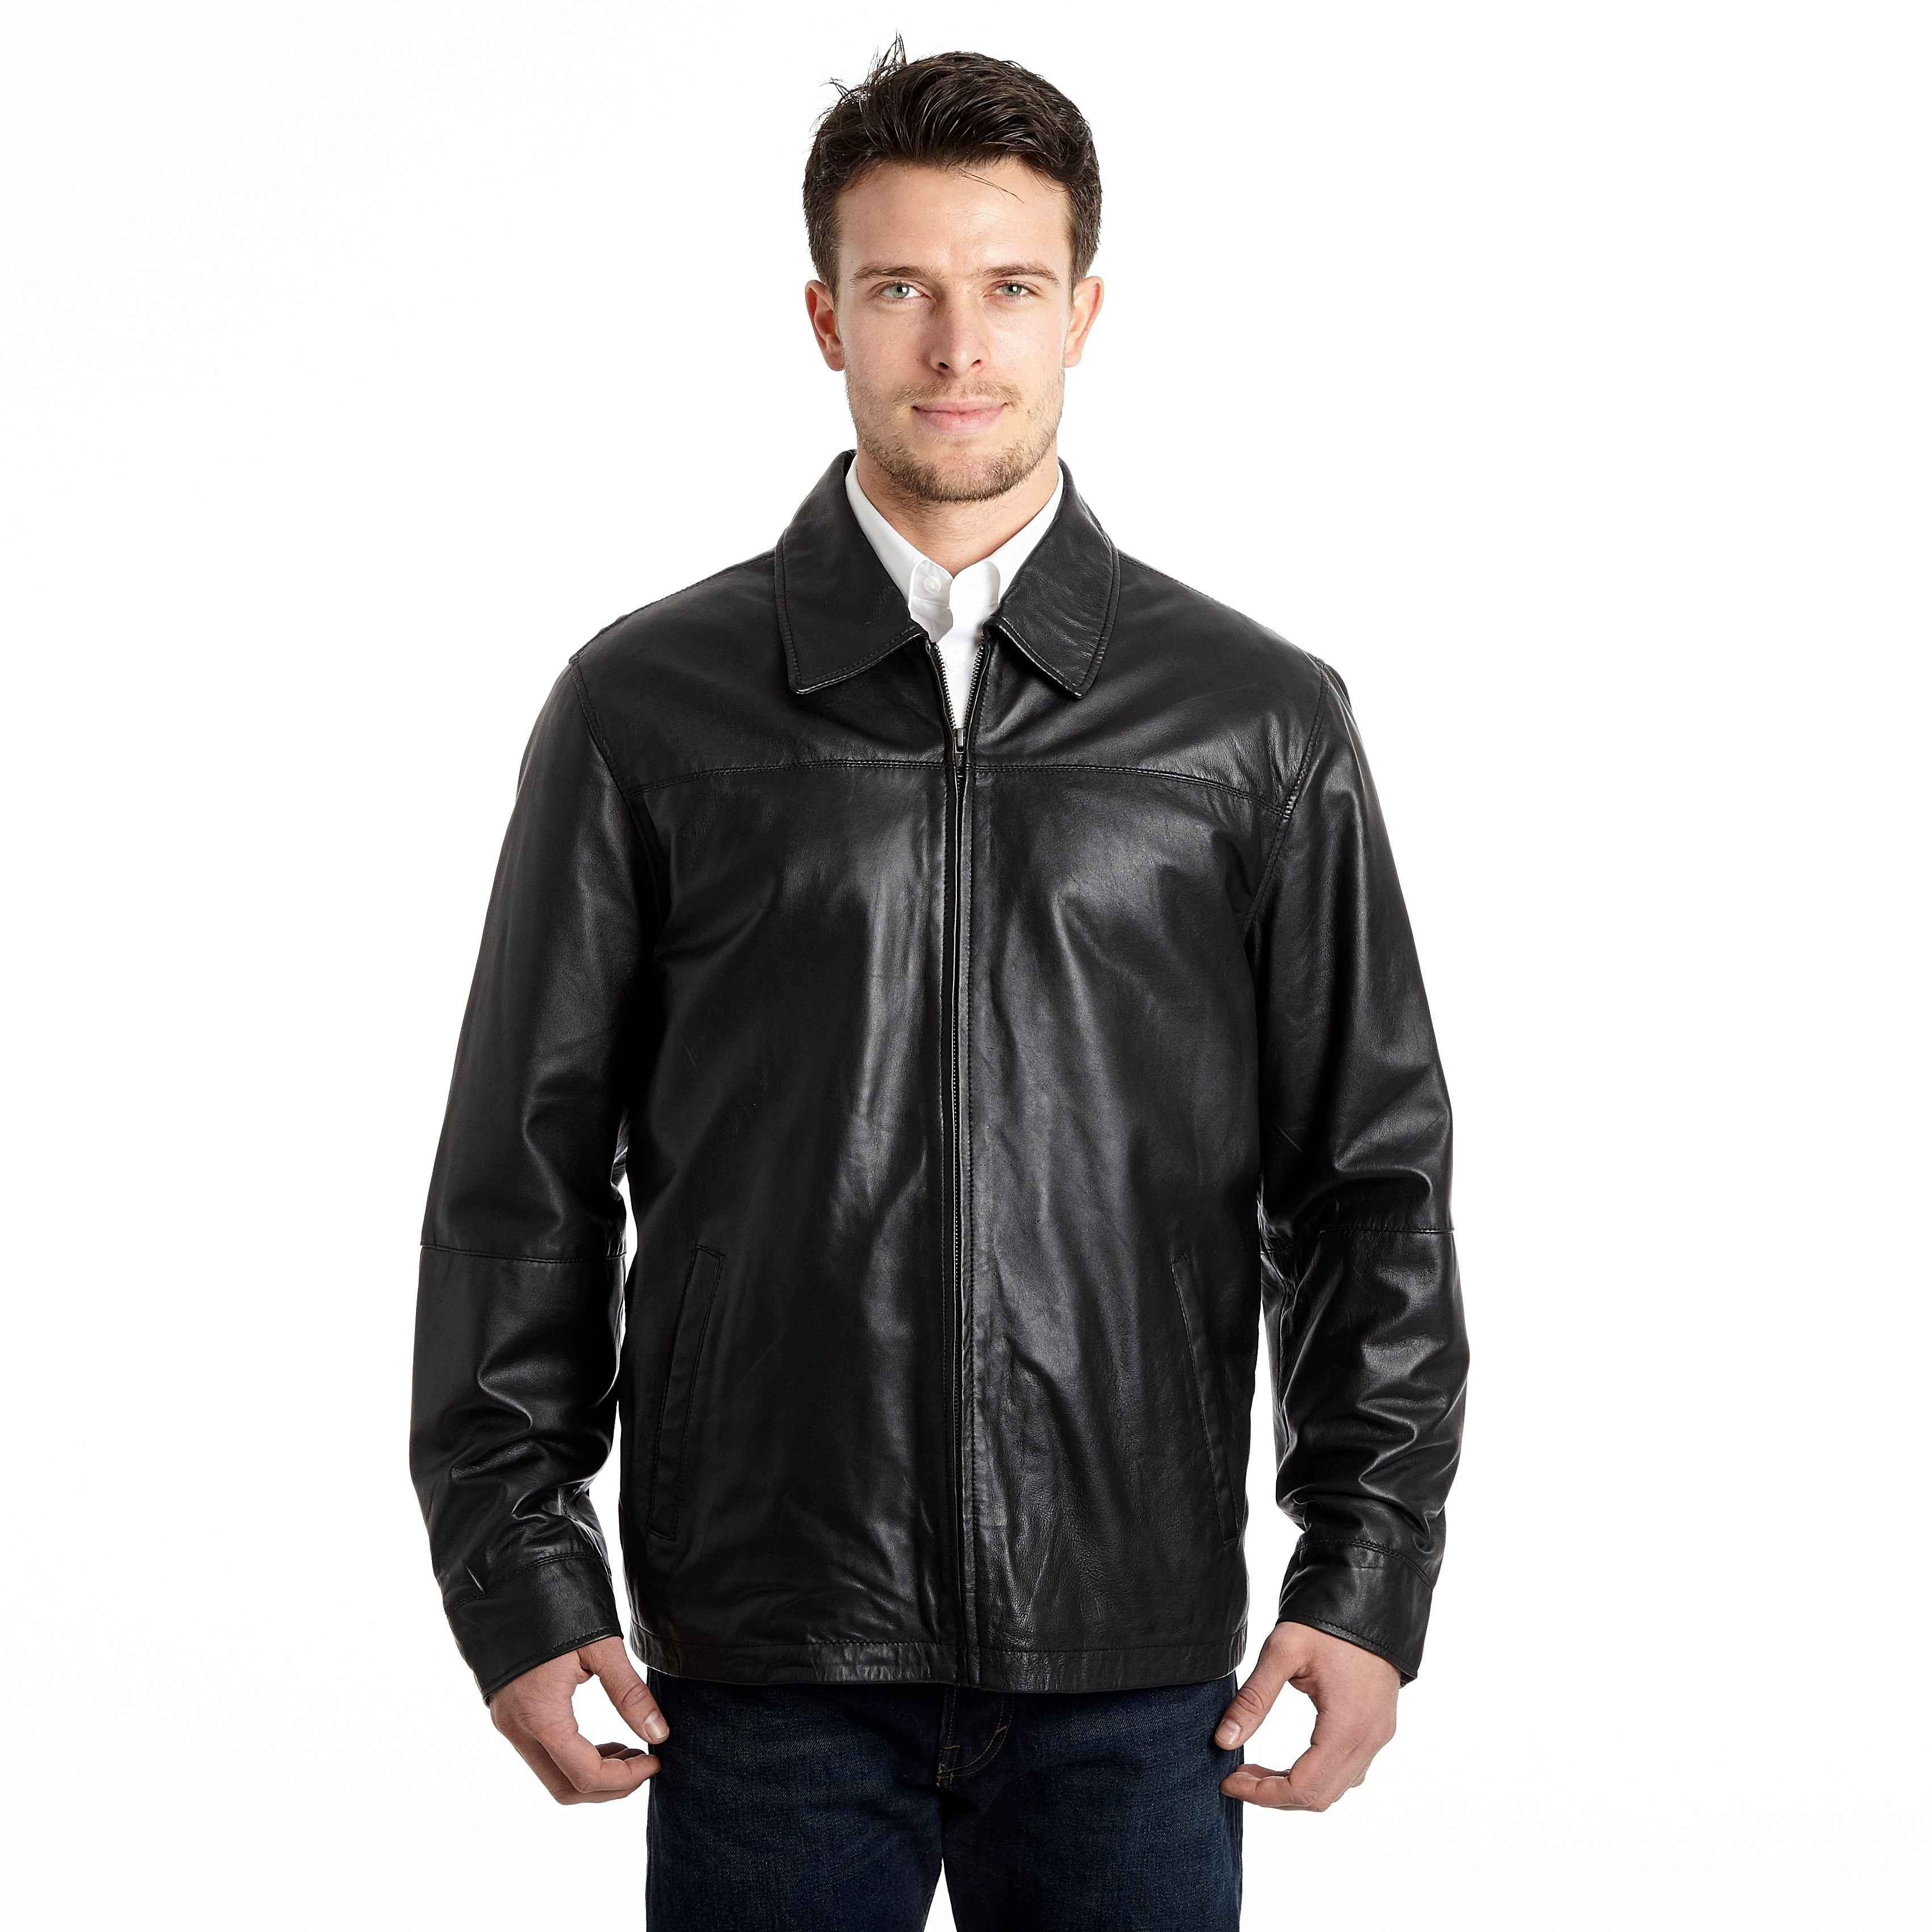 Men's Lamb Leather Open Bottom Jacket with Self Belted